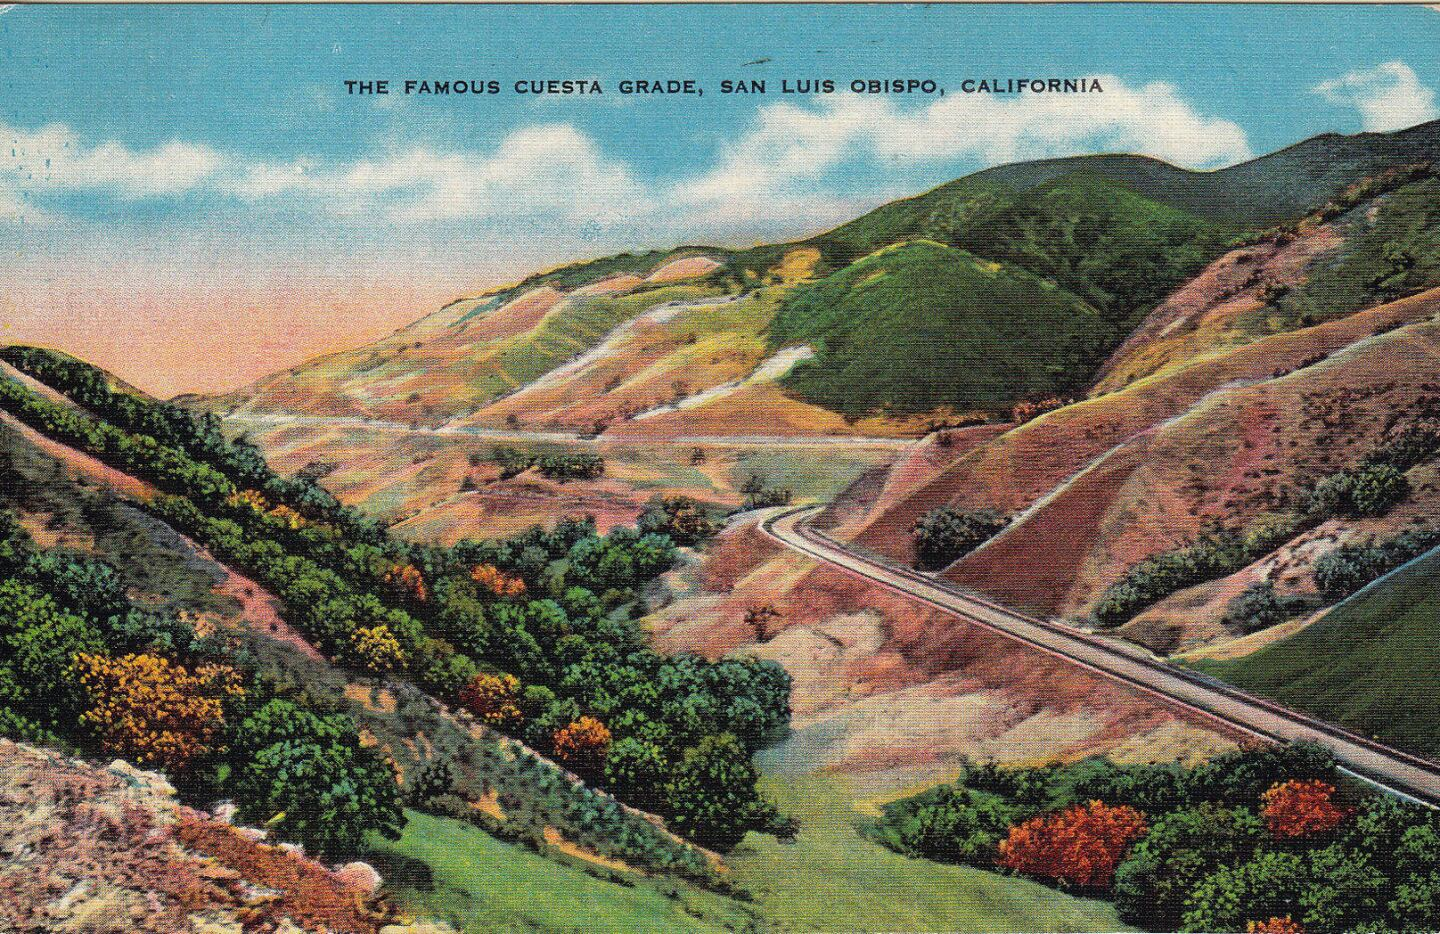 The Cuesta Grade, a stretch of Highway 101 located just north of San Luis Obispo, connects the city with communities such as Atascadero and Paso Robles.